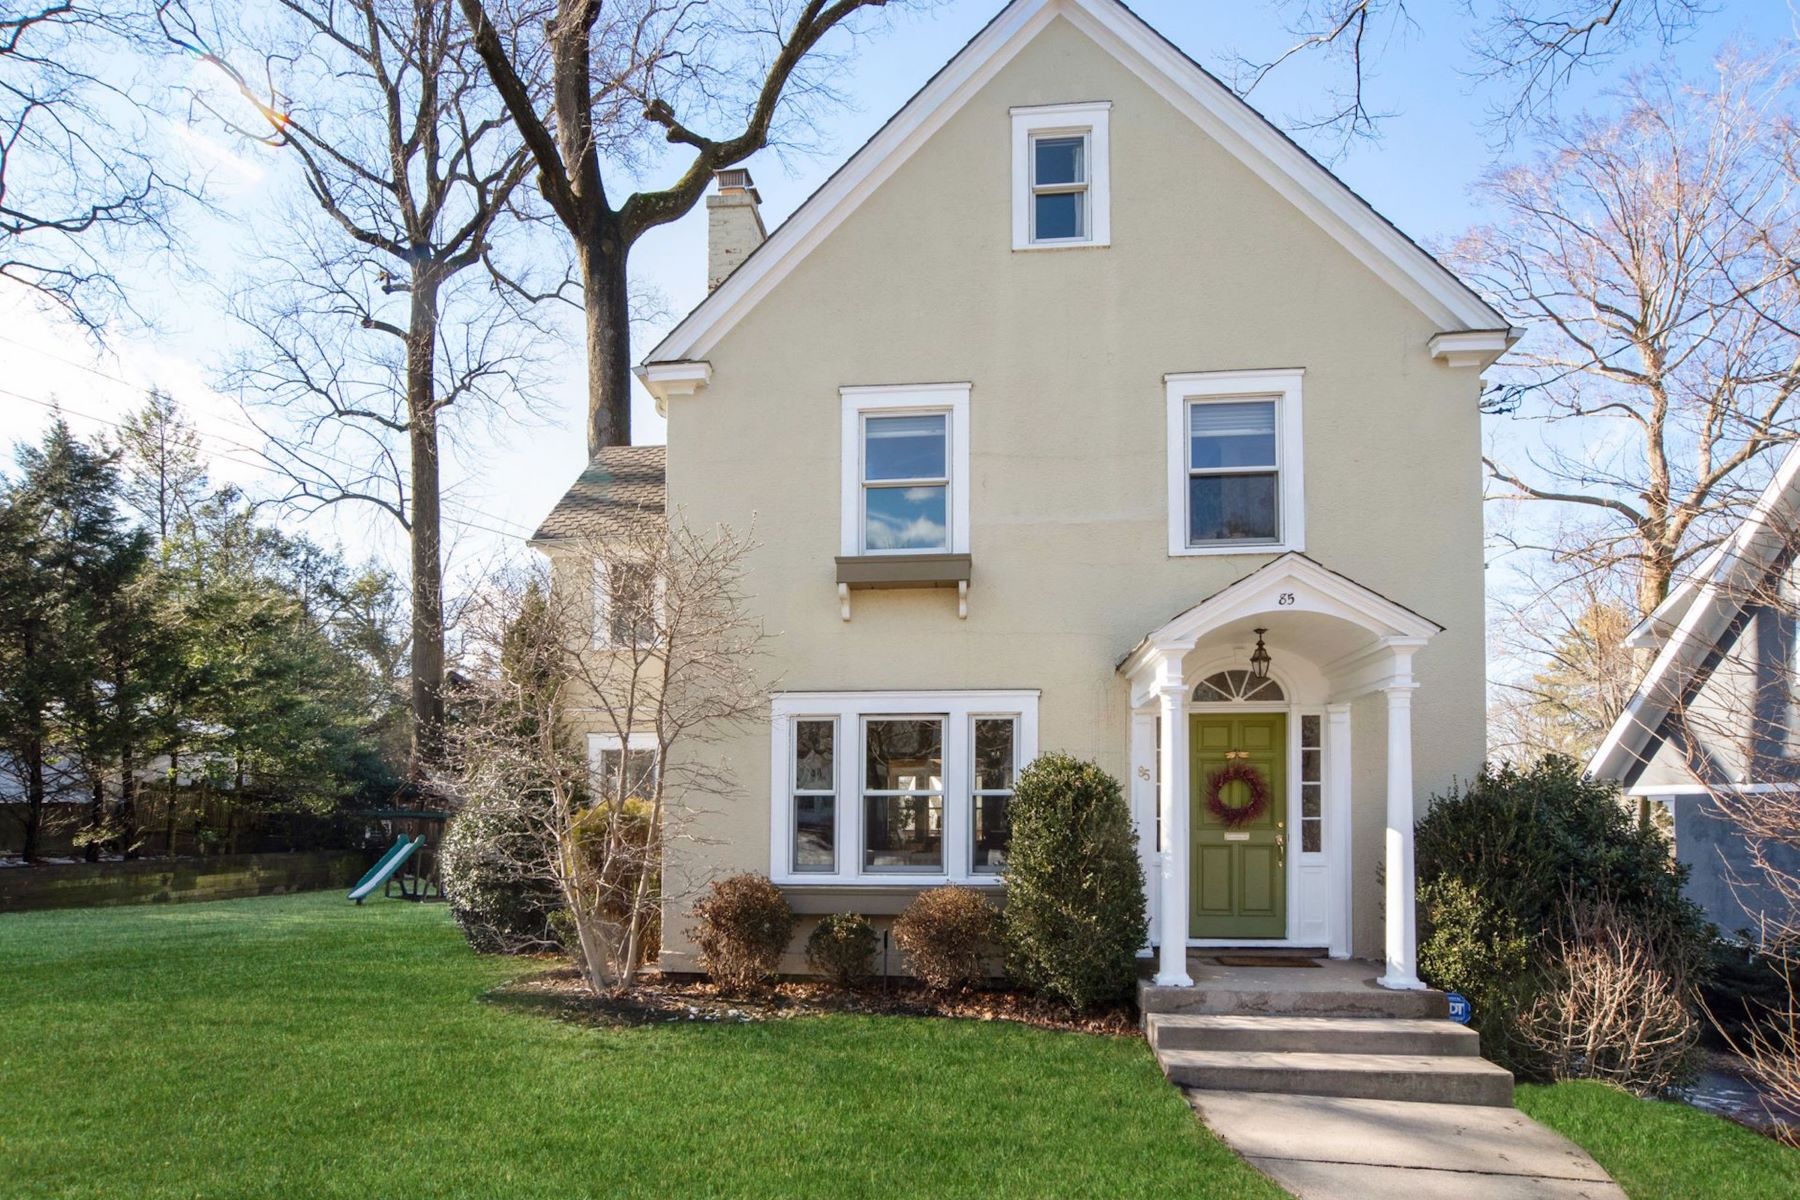 Single Family Homes for Active at 85 Cliford Avenue 85 Clifford Avenue Pelham, New York 10803 United States